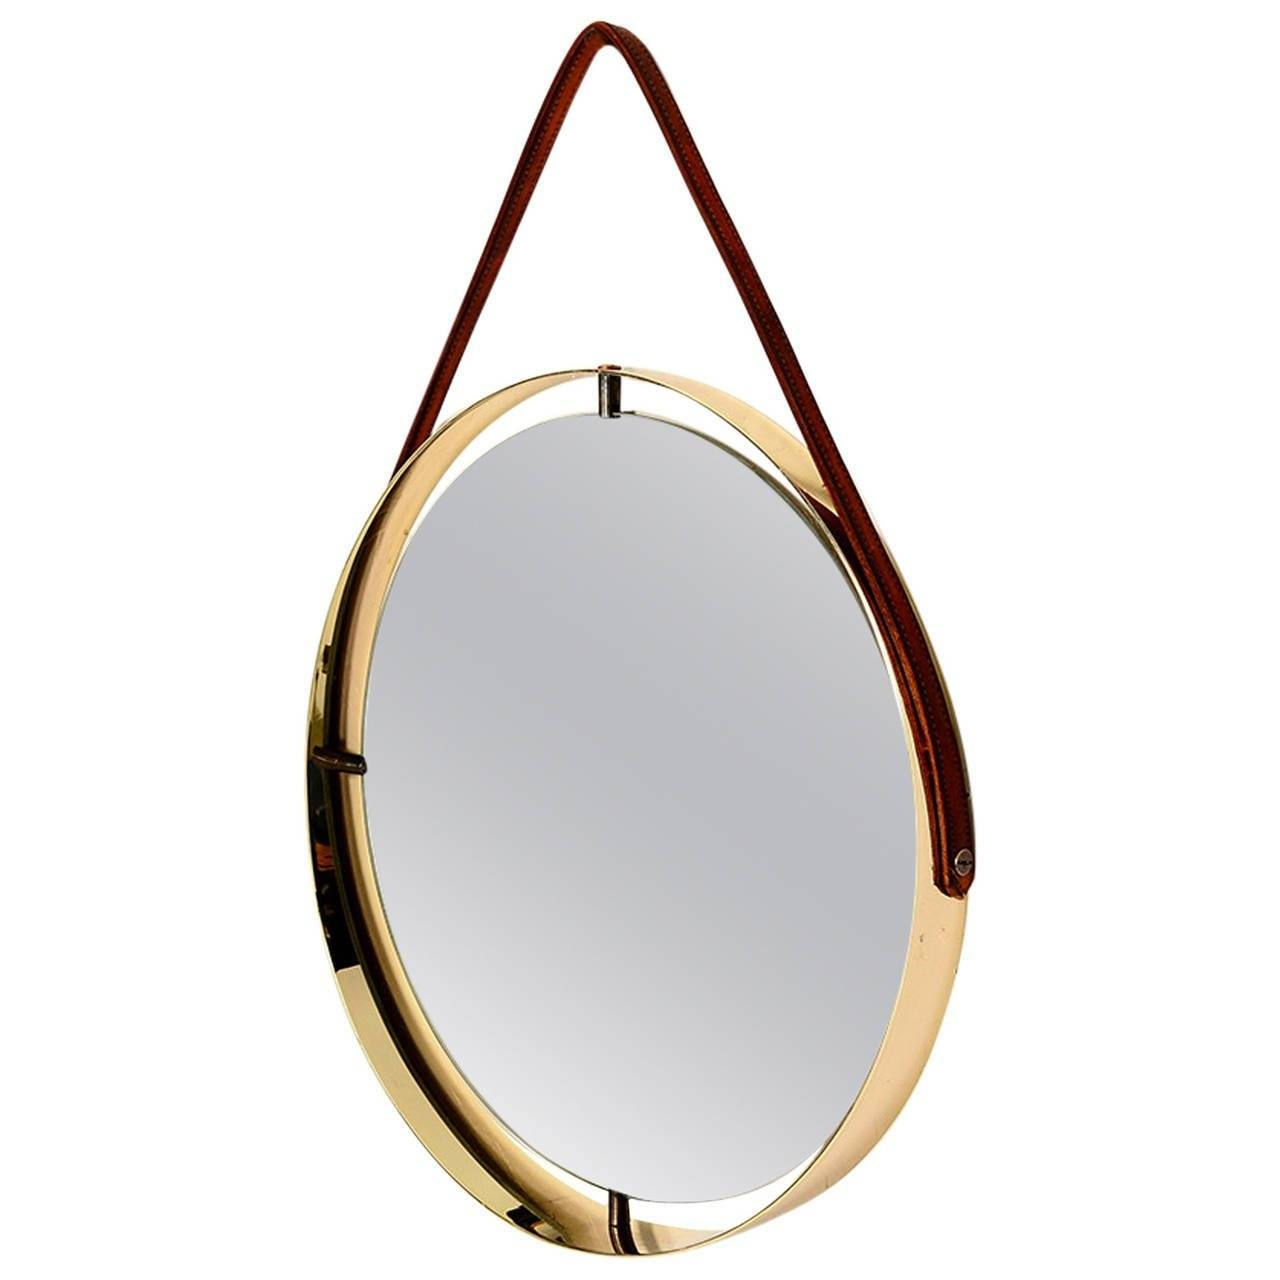 Round Mirror With Leather Strap For Sale At 1stdibs Throughout Round Leather Mirrors (View 6 of 15)